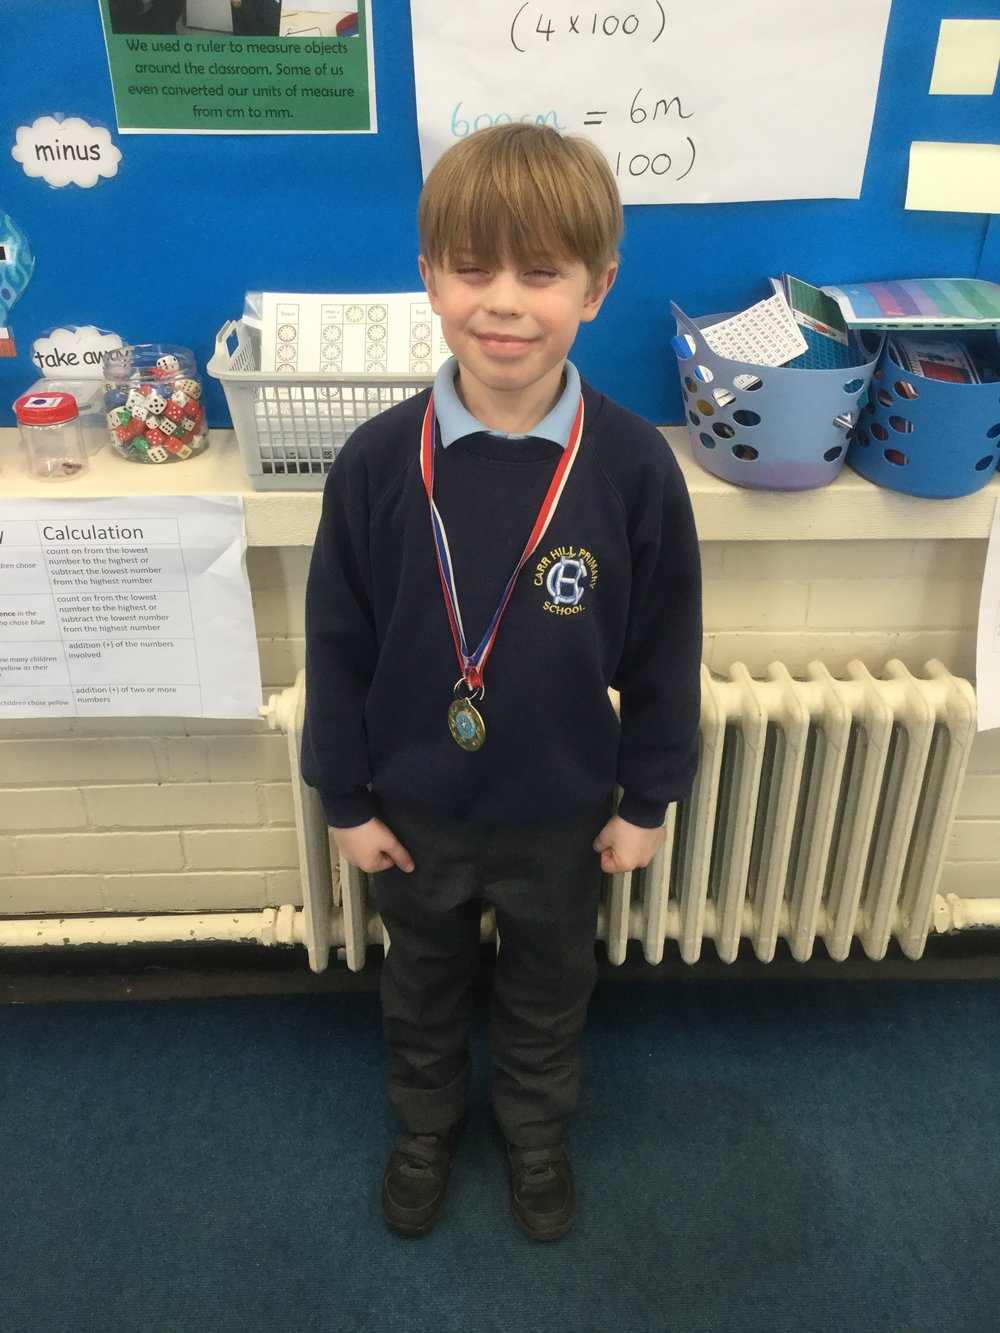 Our 'Champion of the Week' is Samuel for his consistent hard work and effort in all lessons. Keep it up Samuel! -